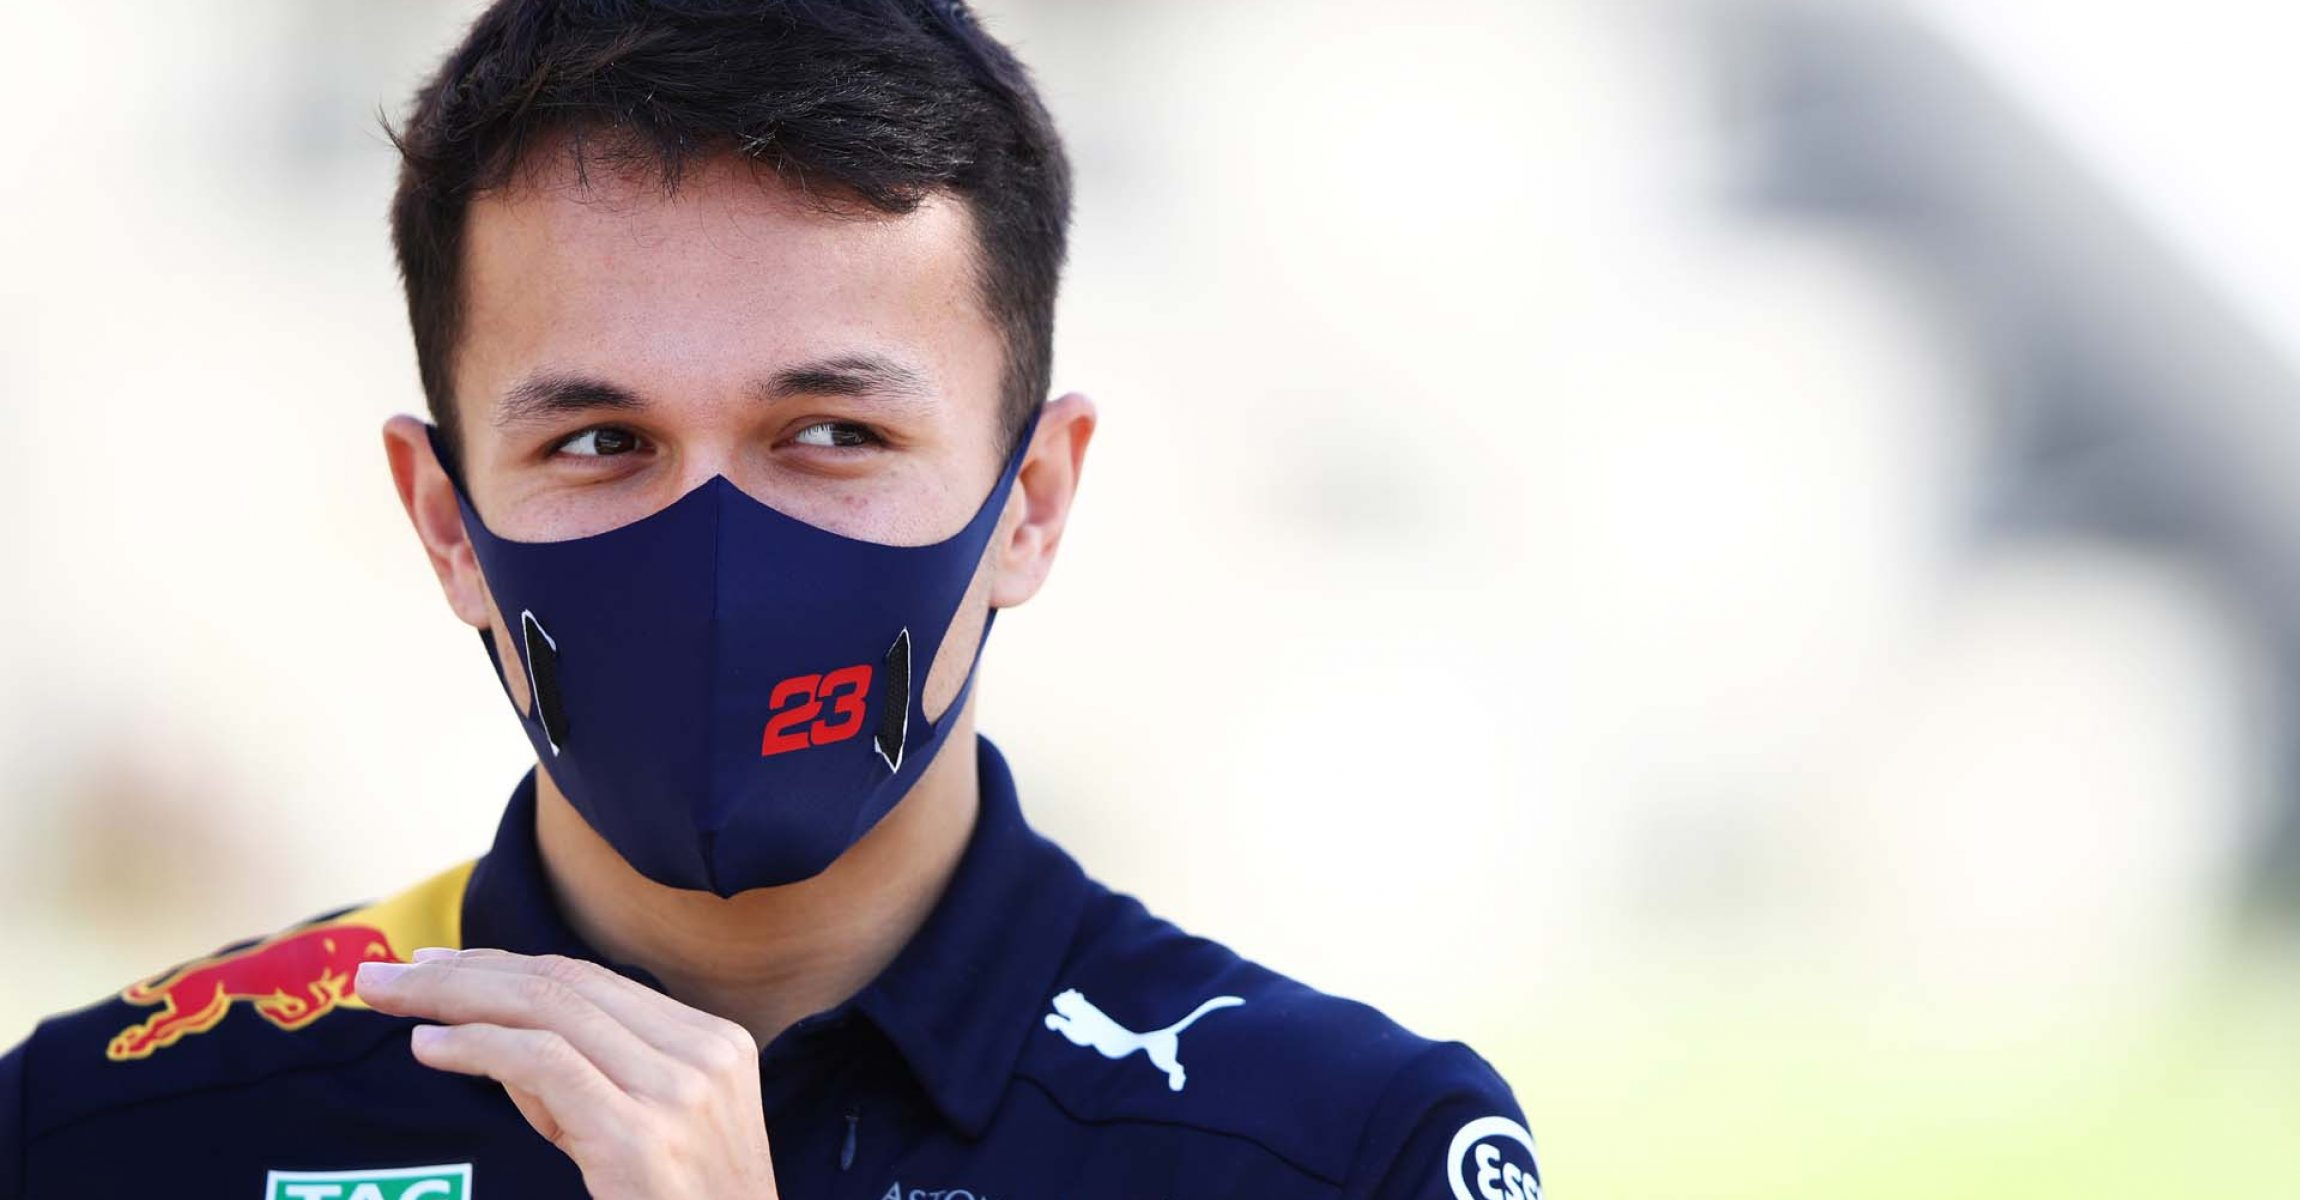 BAHRAIN, BAHRAIN - NOVEMBER 26: Alexander Albon of Thailand and Red Bull Racing looks on in the Paddock during previews ahead of the F1 Grand Prix of Bahrain at Bahrain International Circuit on November 26, 2020 in Bahrain, Bahrain. (Photo by Mark Thompson/Getty Images)